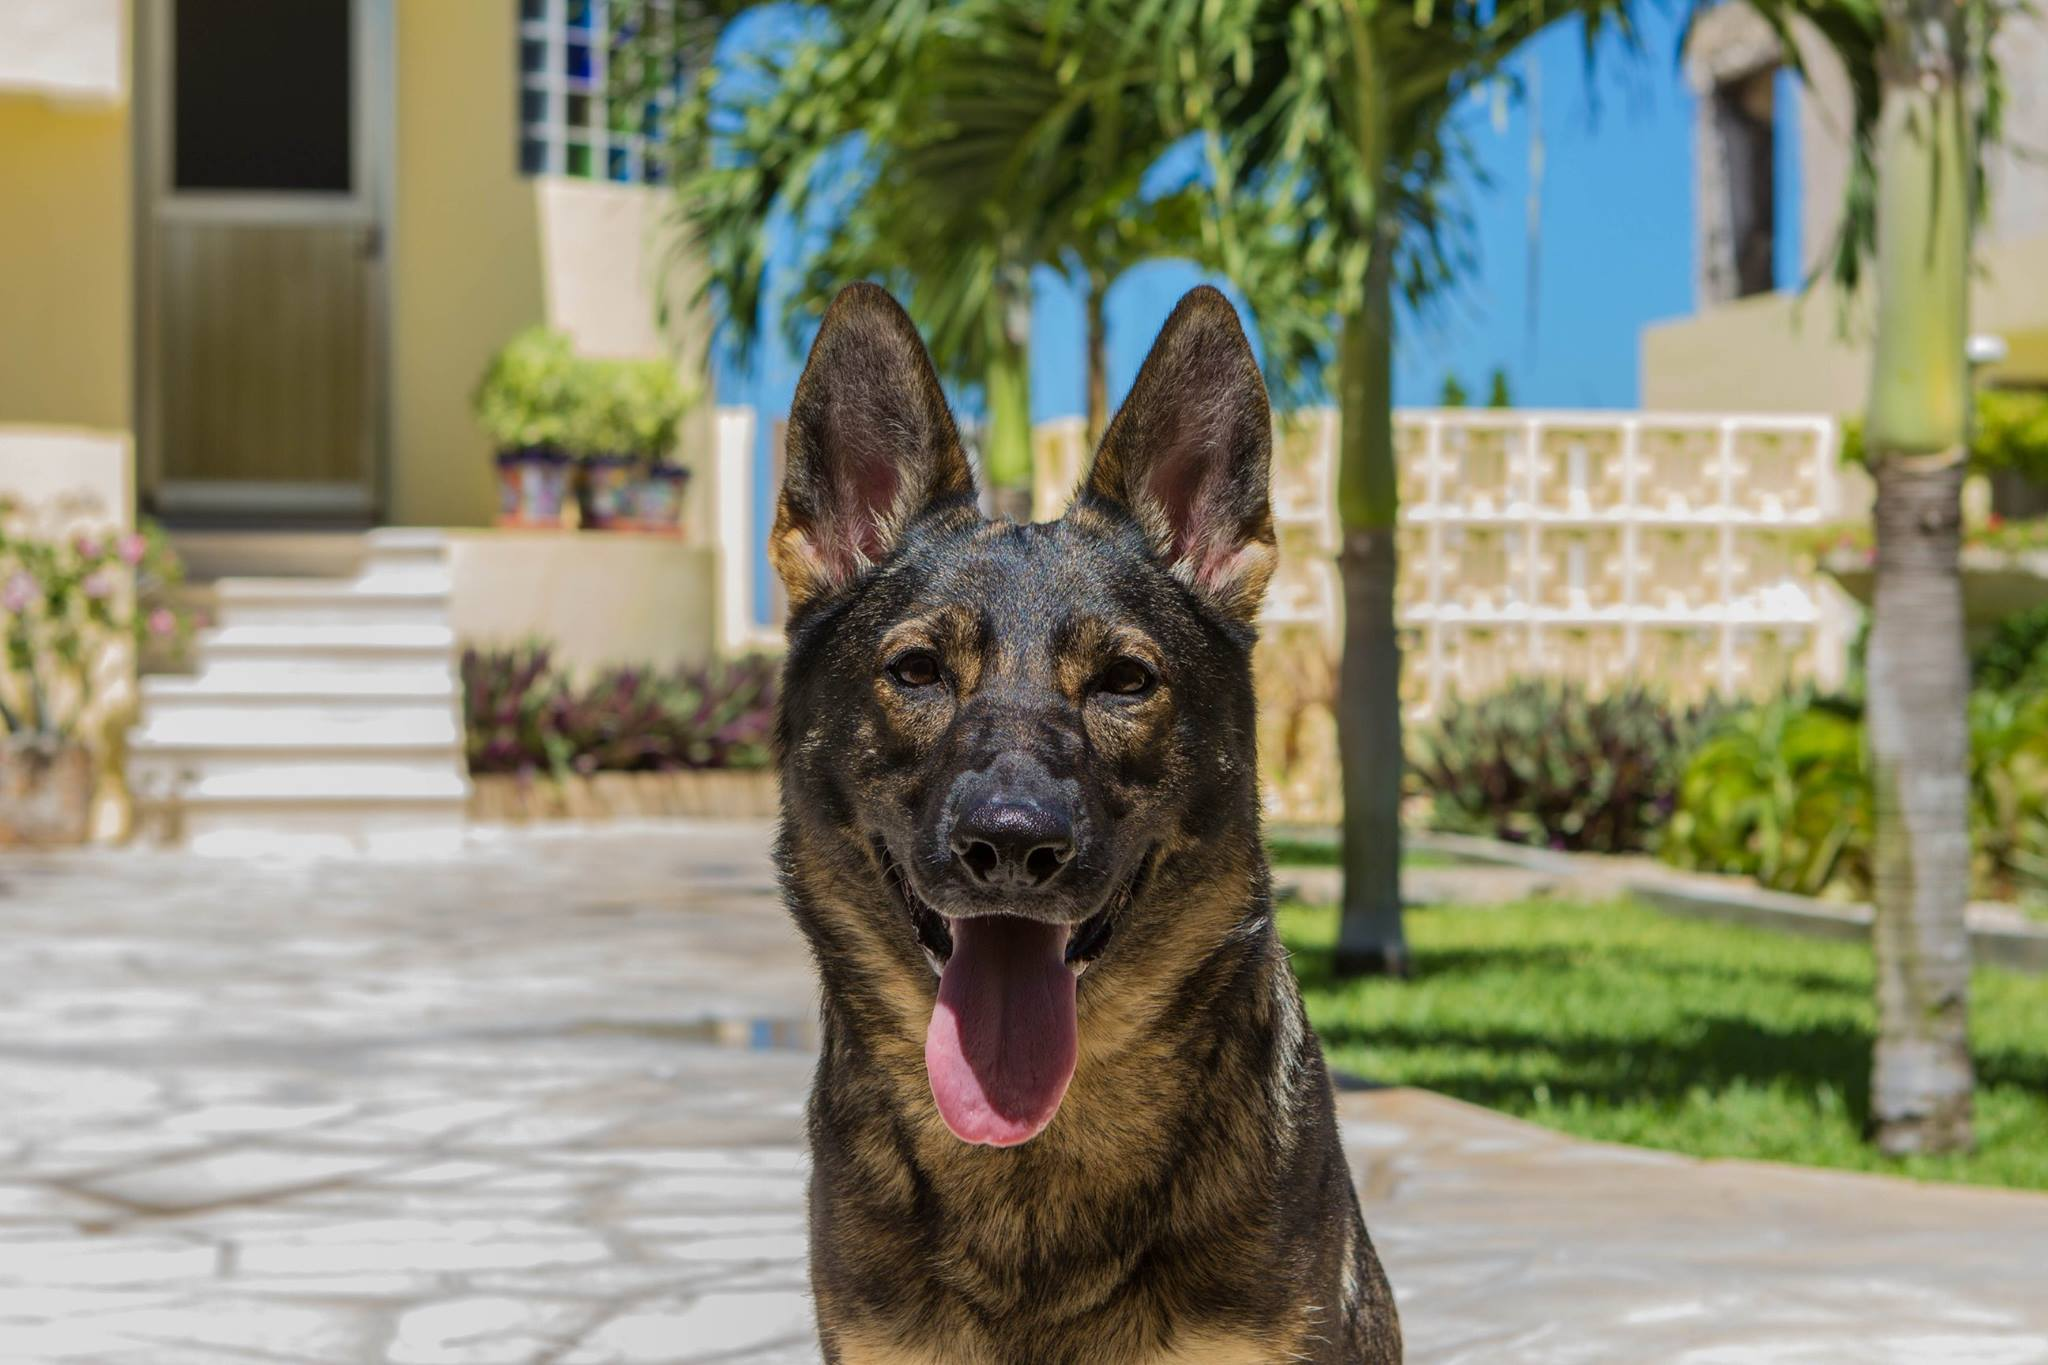 Karma on vacation in Mexico